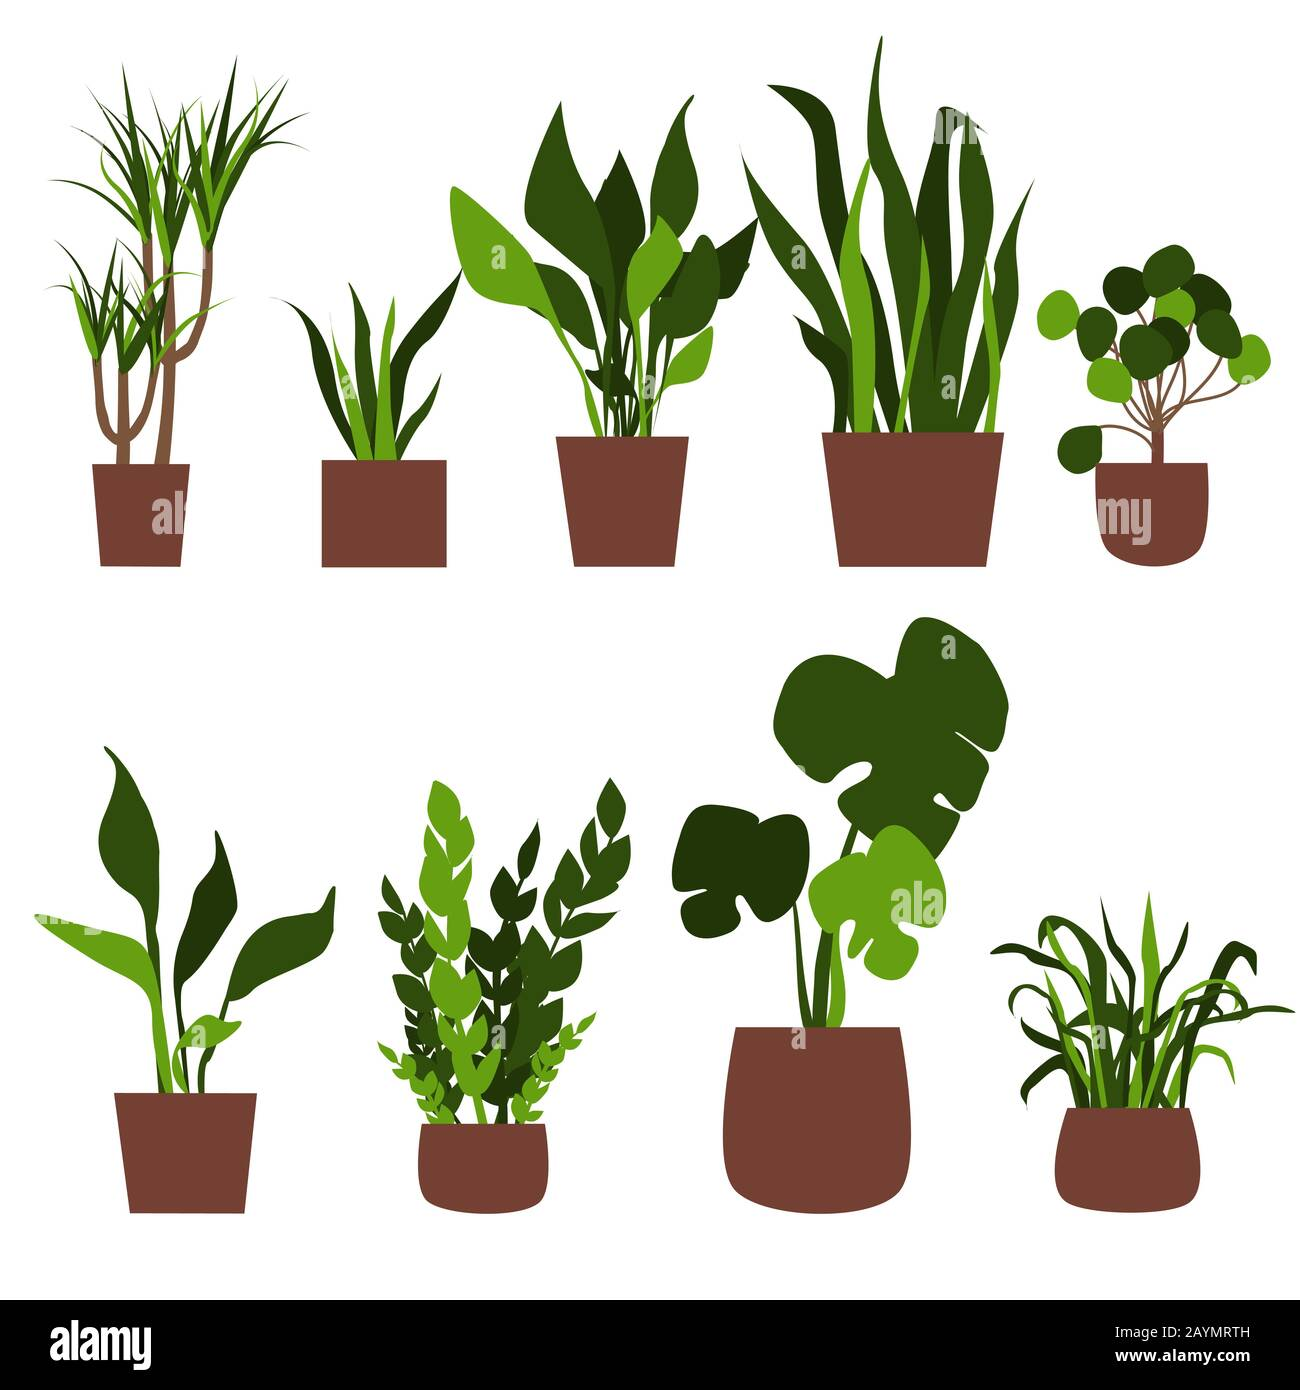 Houseplant Vector Vectors High Resolution Stock Photography And Images Alamy